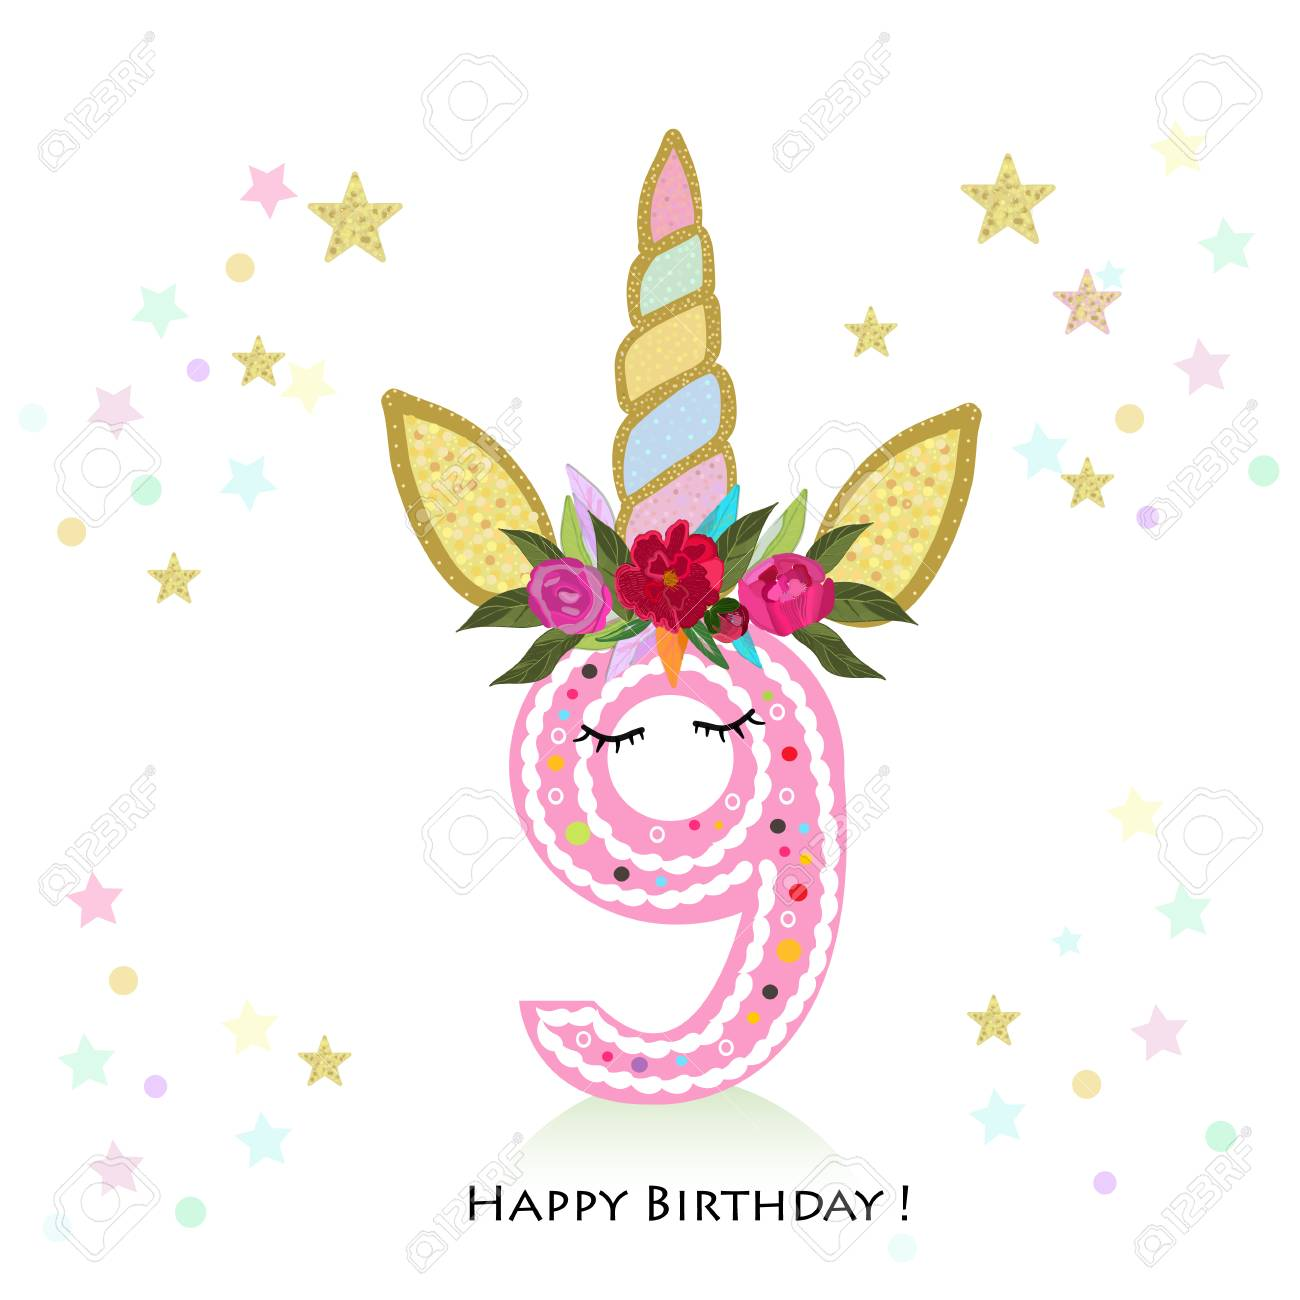 Birthday Greeting Card Design For 9 Year Old Template Stock Vector